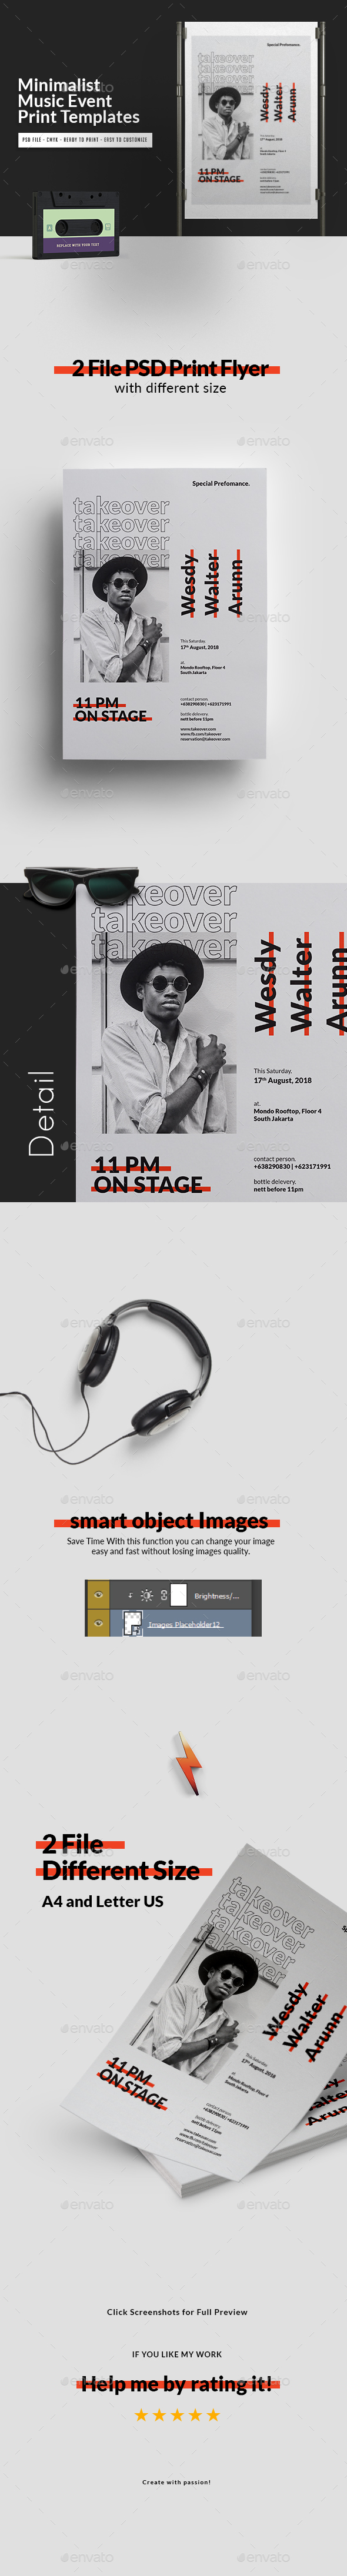 Minimalist Music Event Flyer Templates - Events Flyers